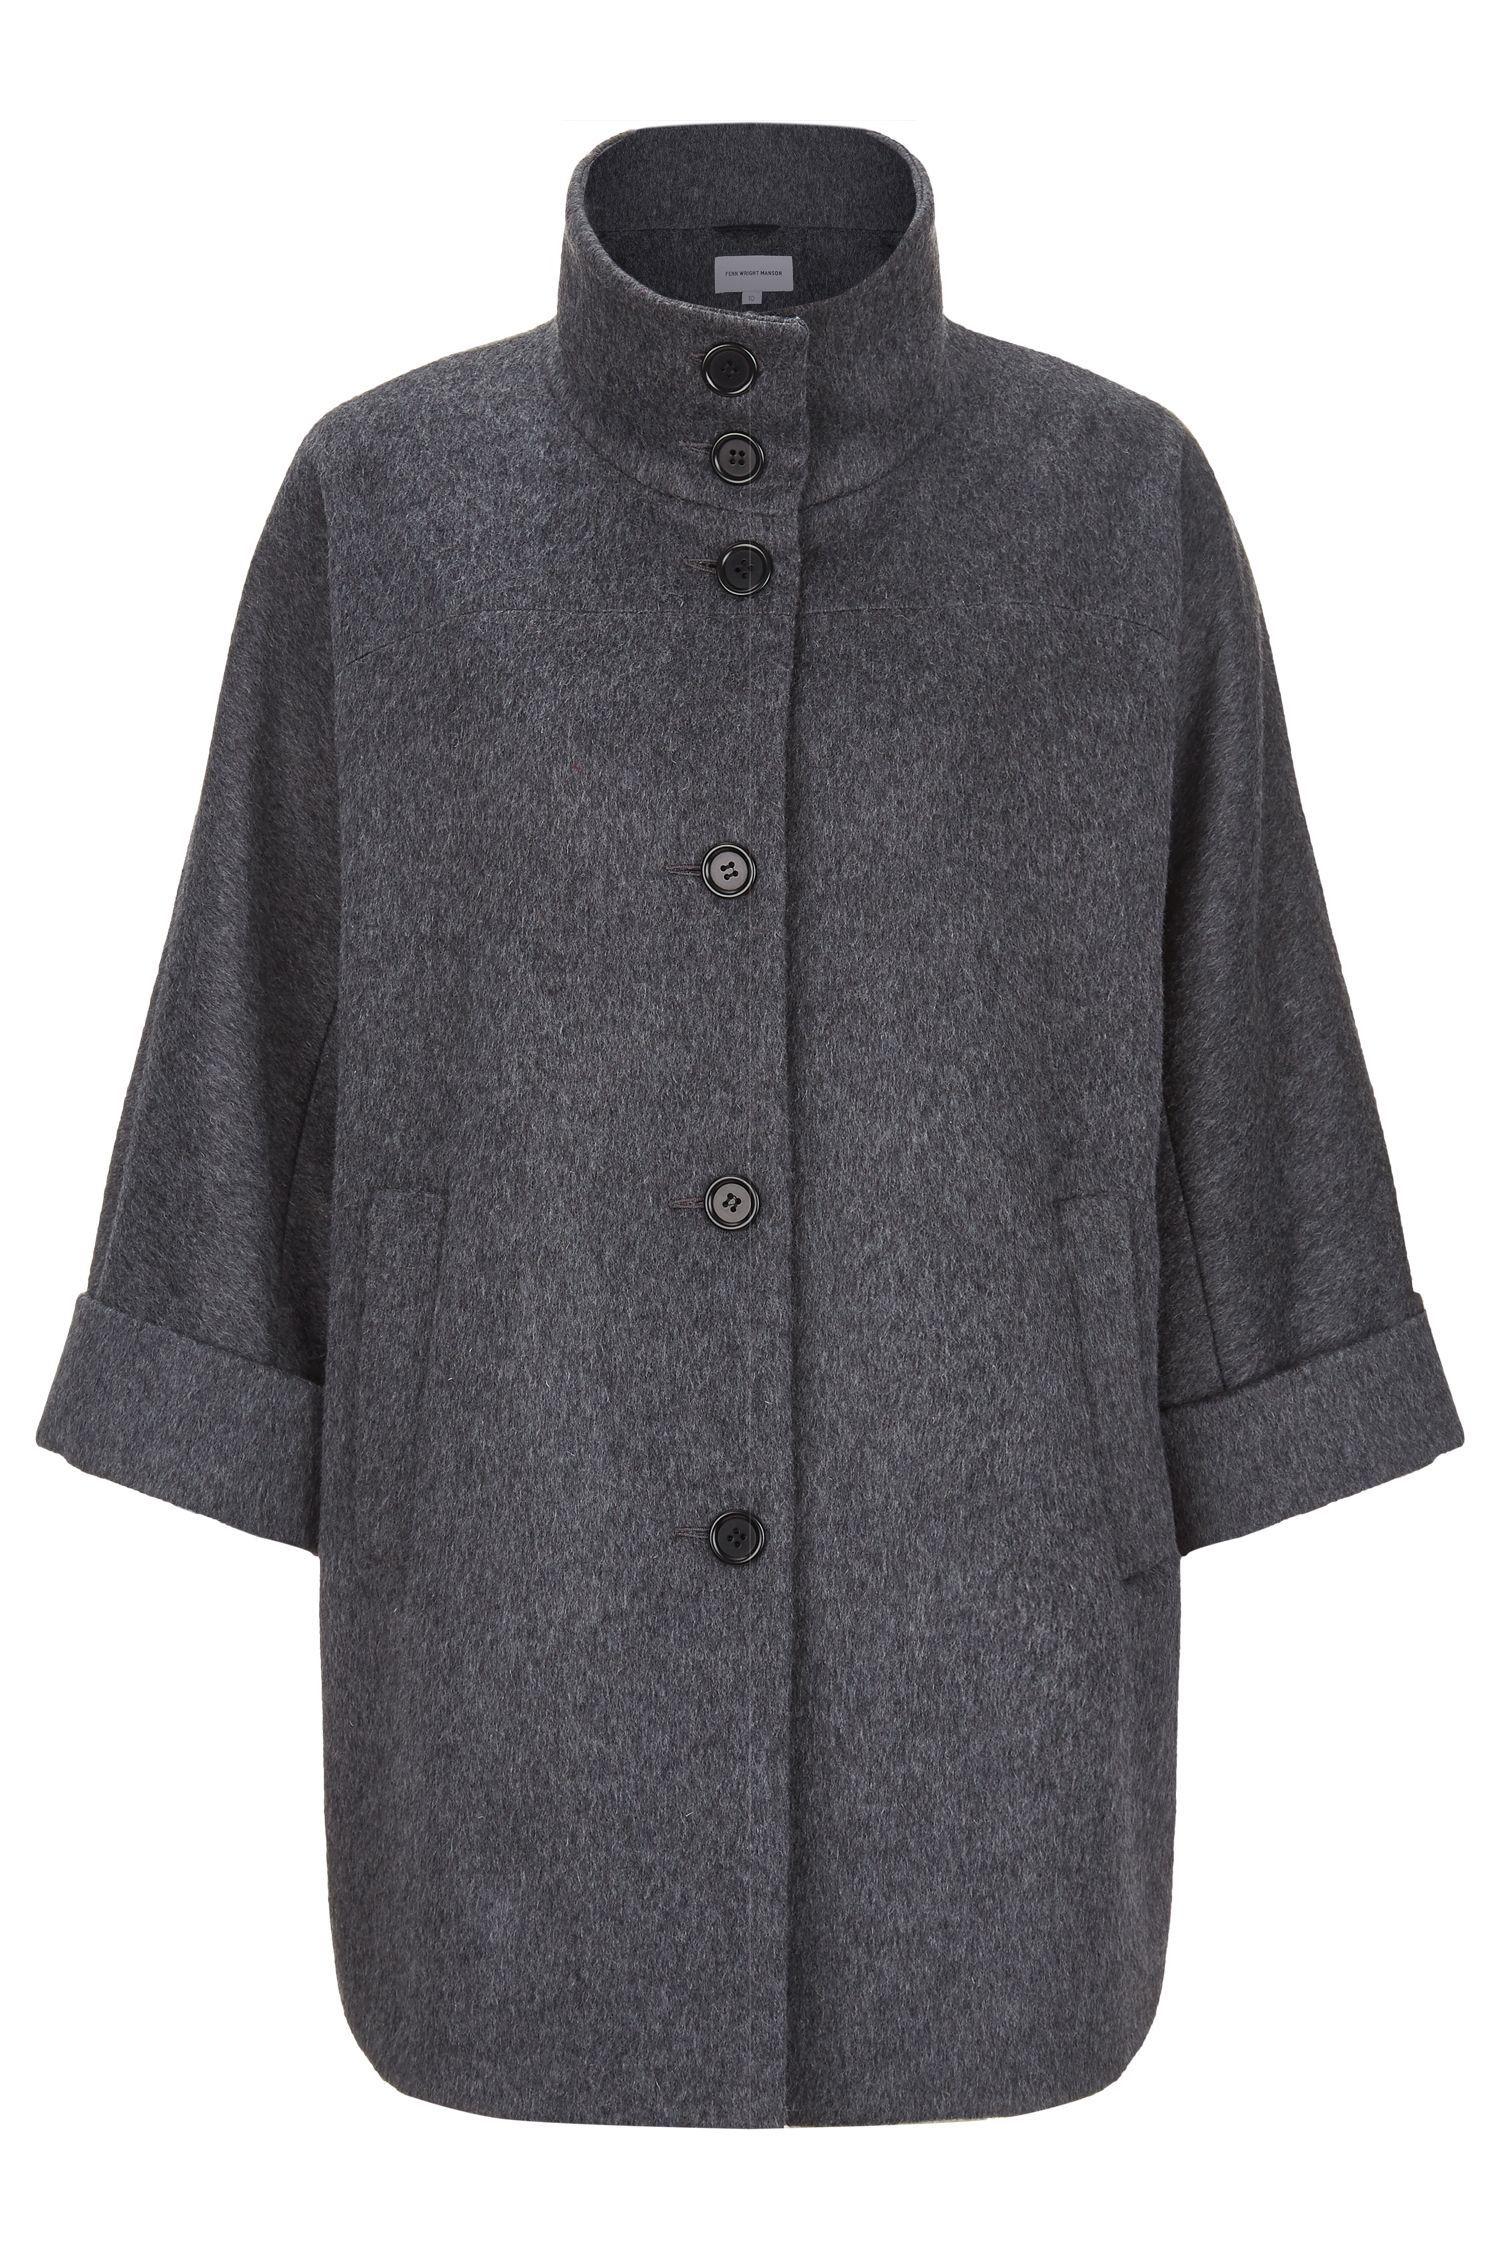 Fenn Wright Manson Sofia Coat, Grey